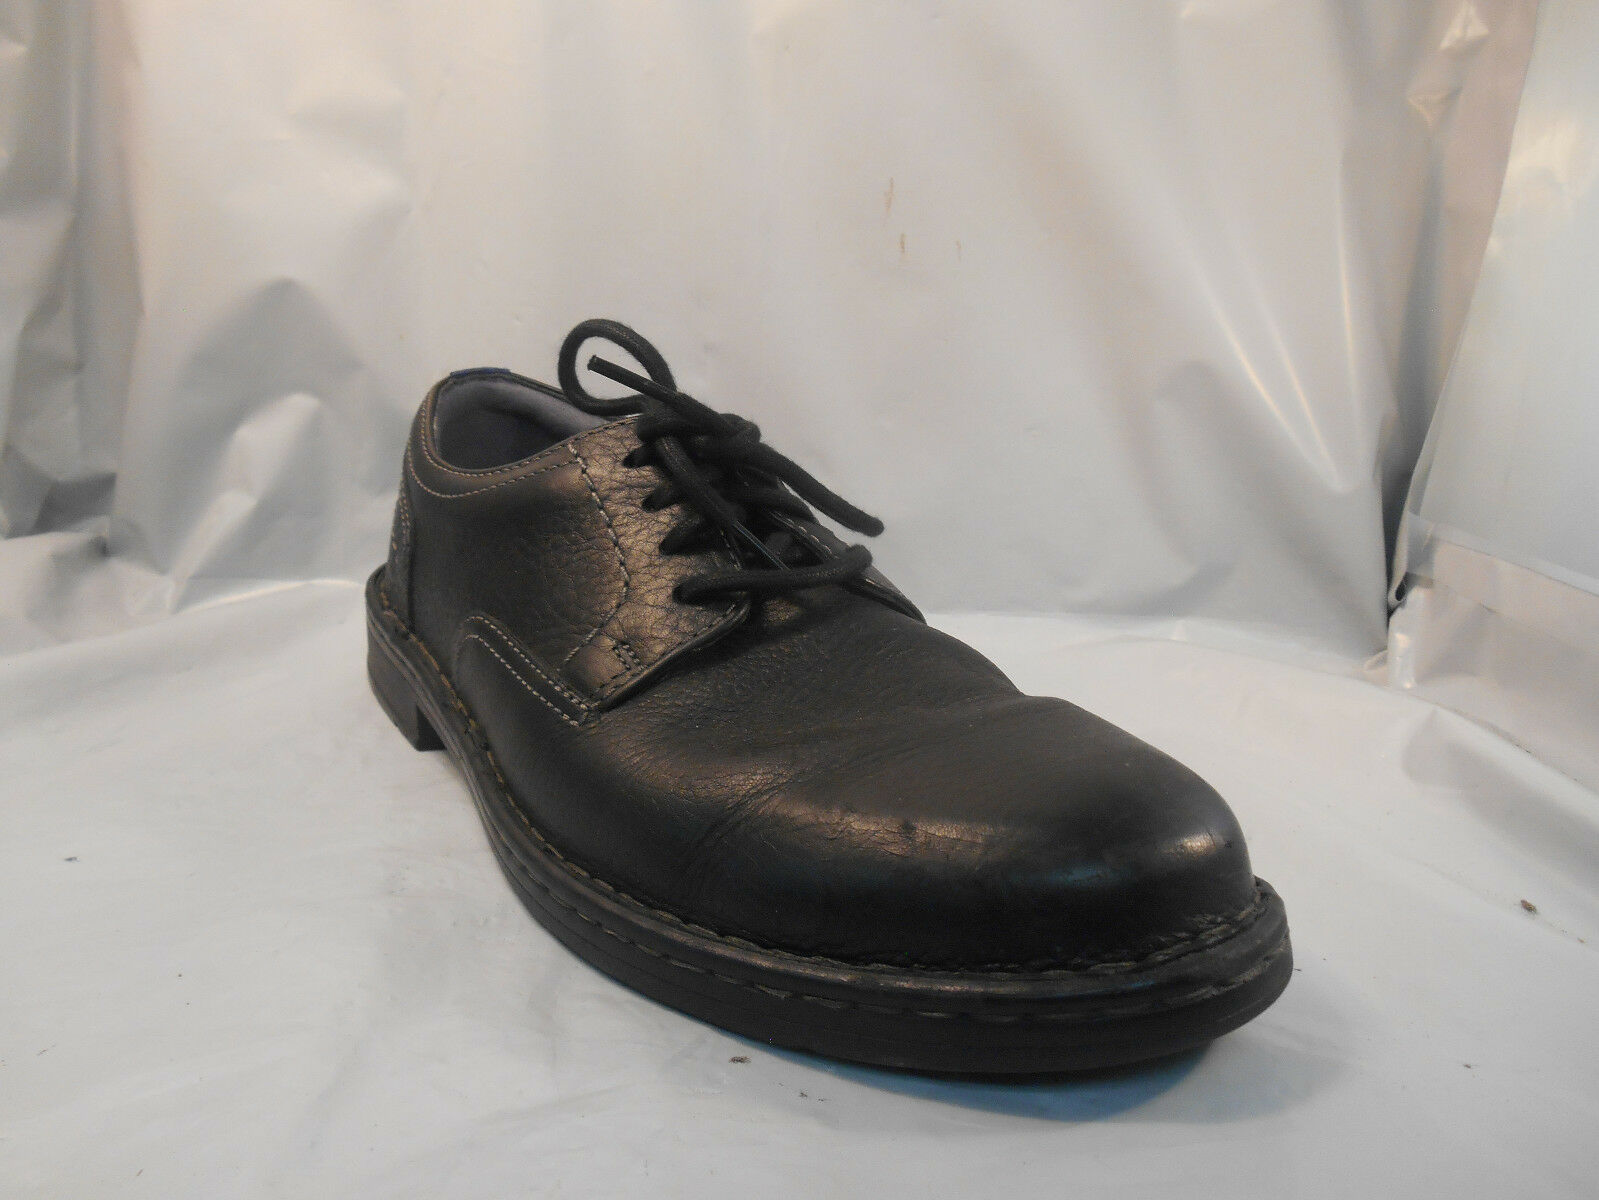 Clarks Kyros Black Leather Plain Toe Oxfords Men's Sz 10.5 M